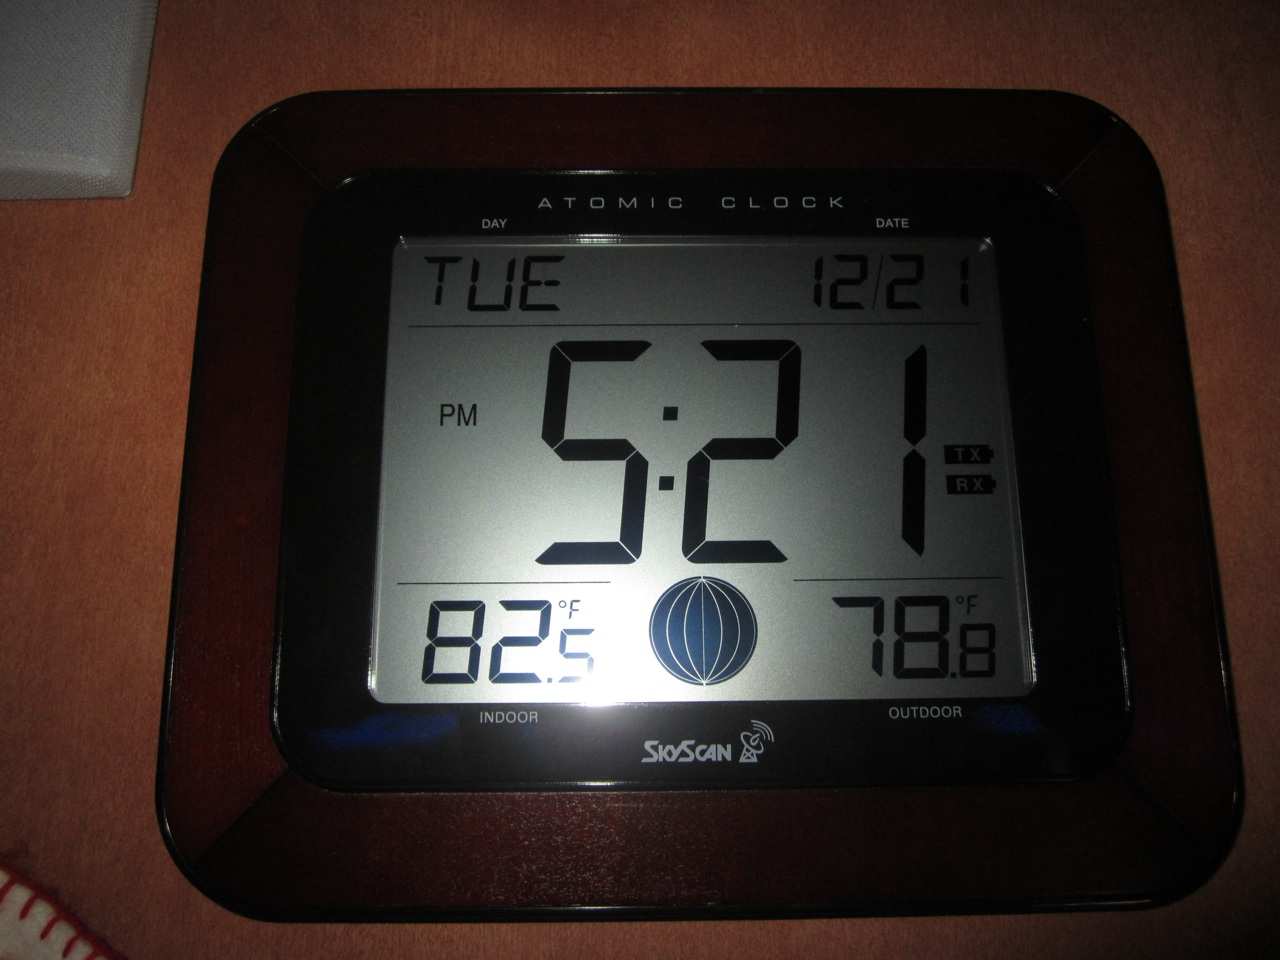 First Official Day Of Winter And It's 78 Degrees At 5:21 At Night Here In Longview, TX